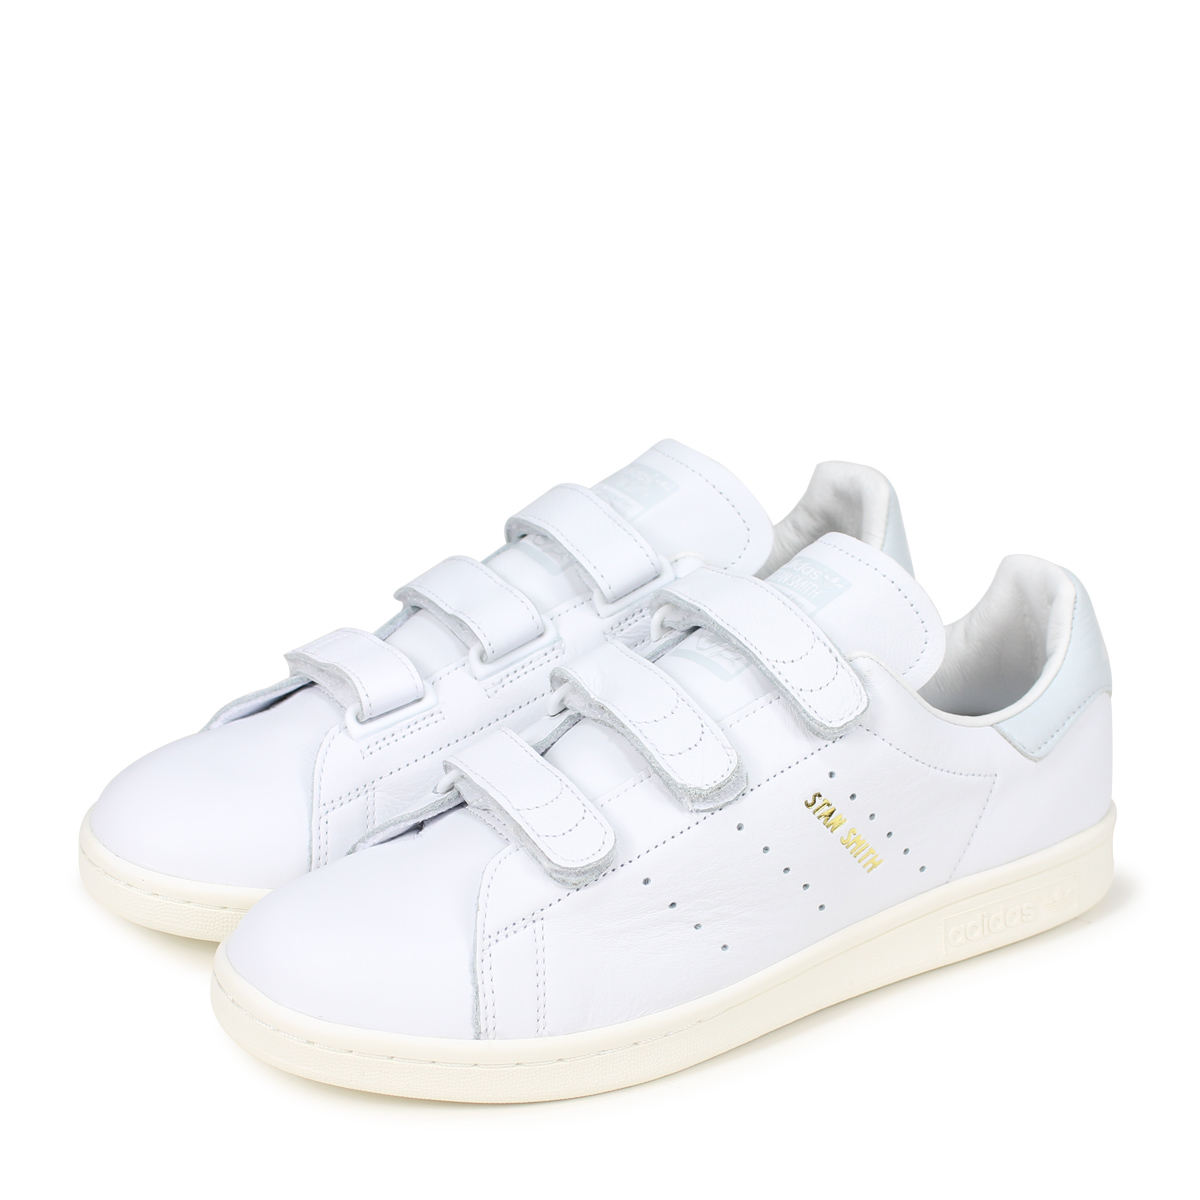 adidas Originals STAN SMITH CF Adidas originals Stan Smith sneakers men gap  Dis F36574 white  load planned Shinnyu load in reservation product 8 14 ... fa6926acd